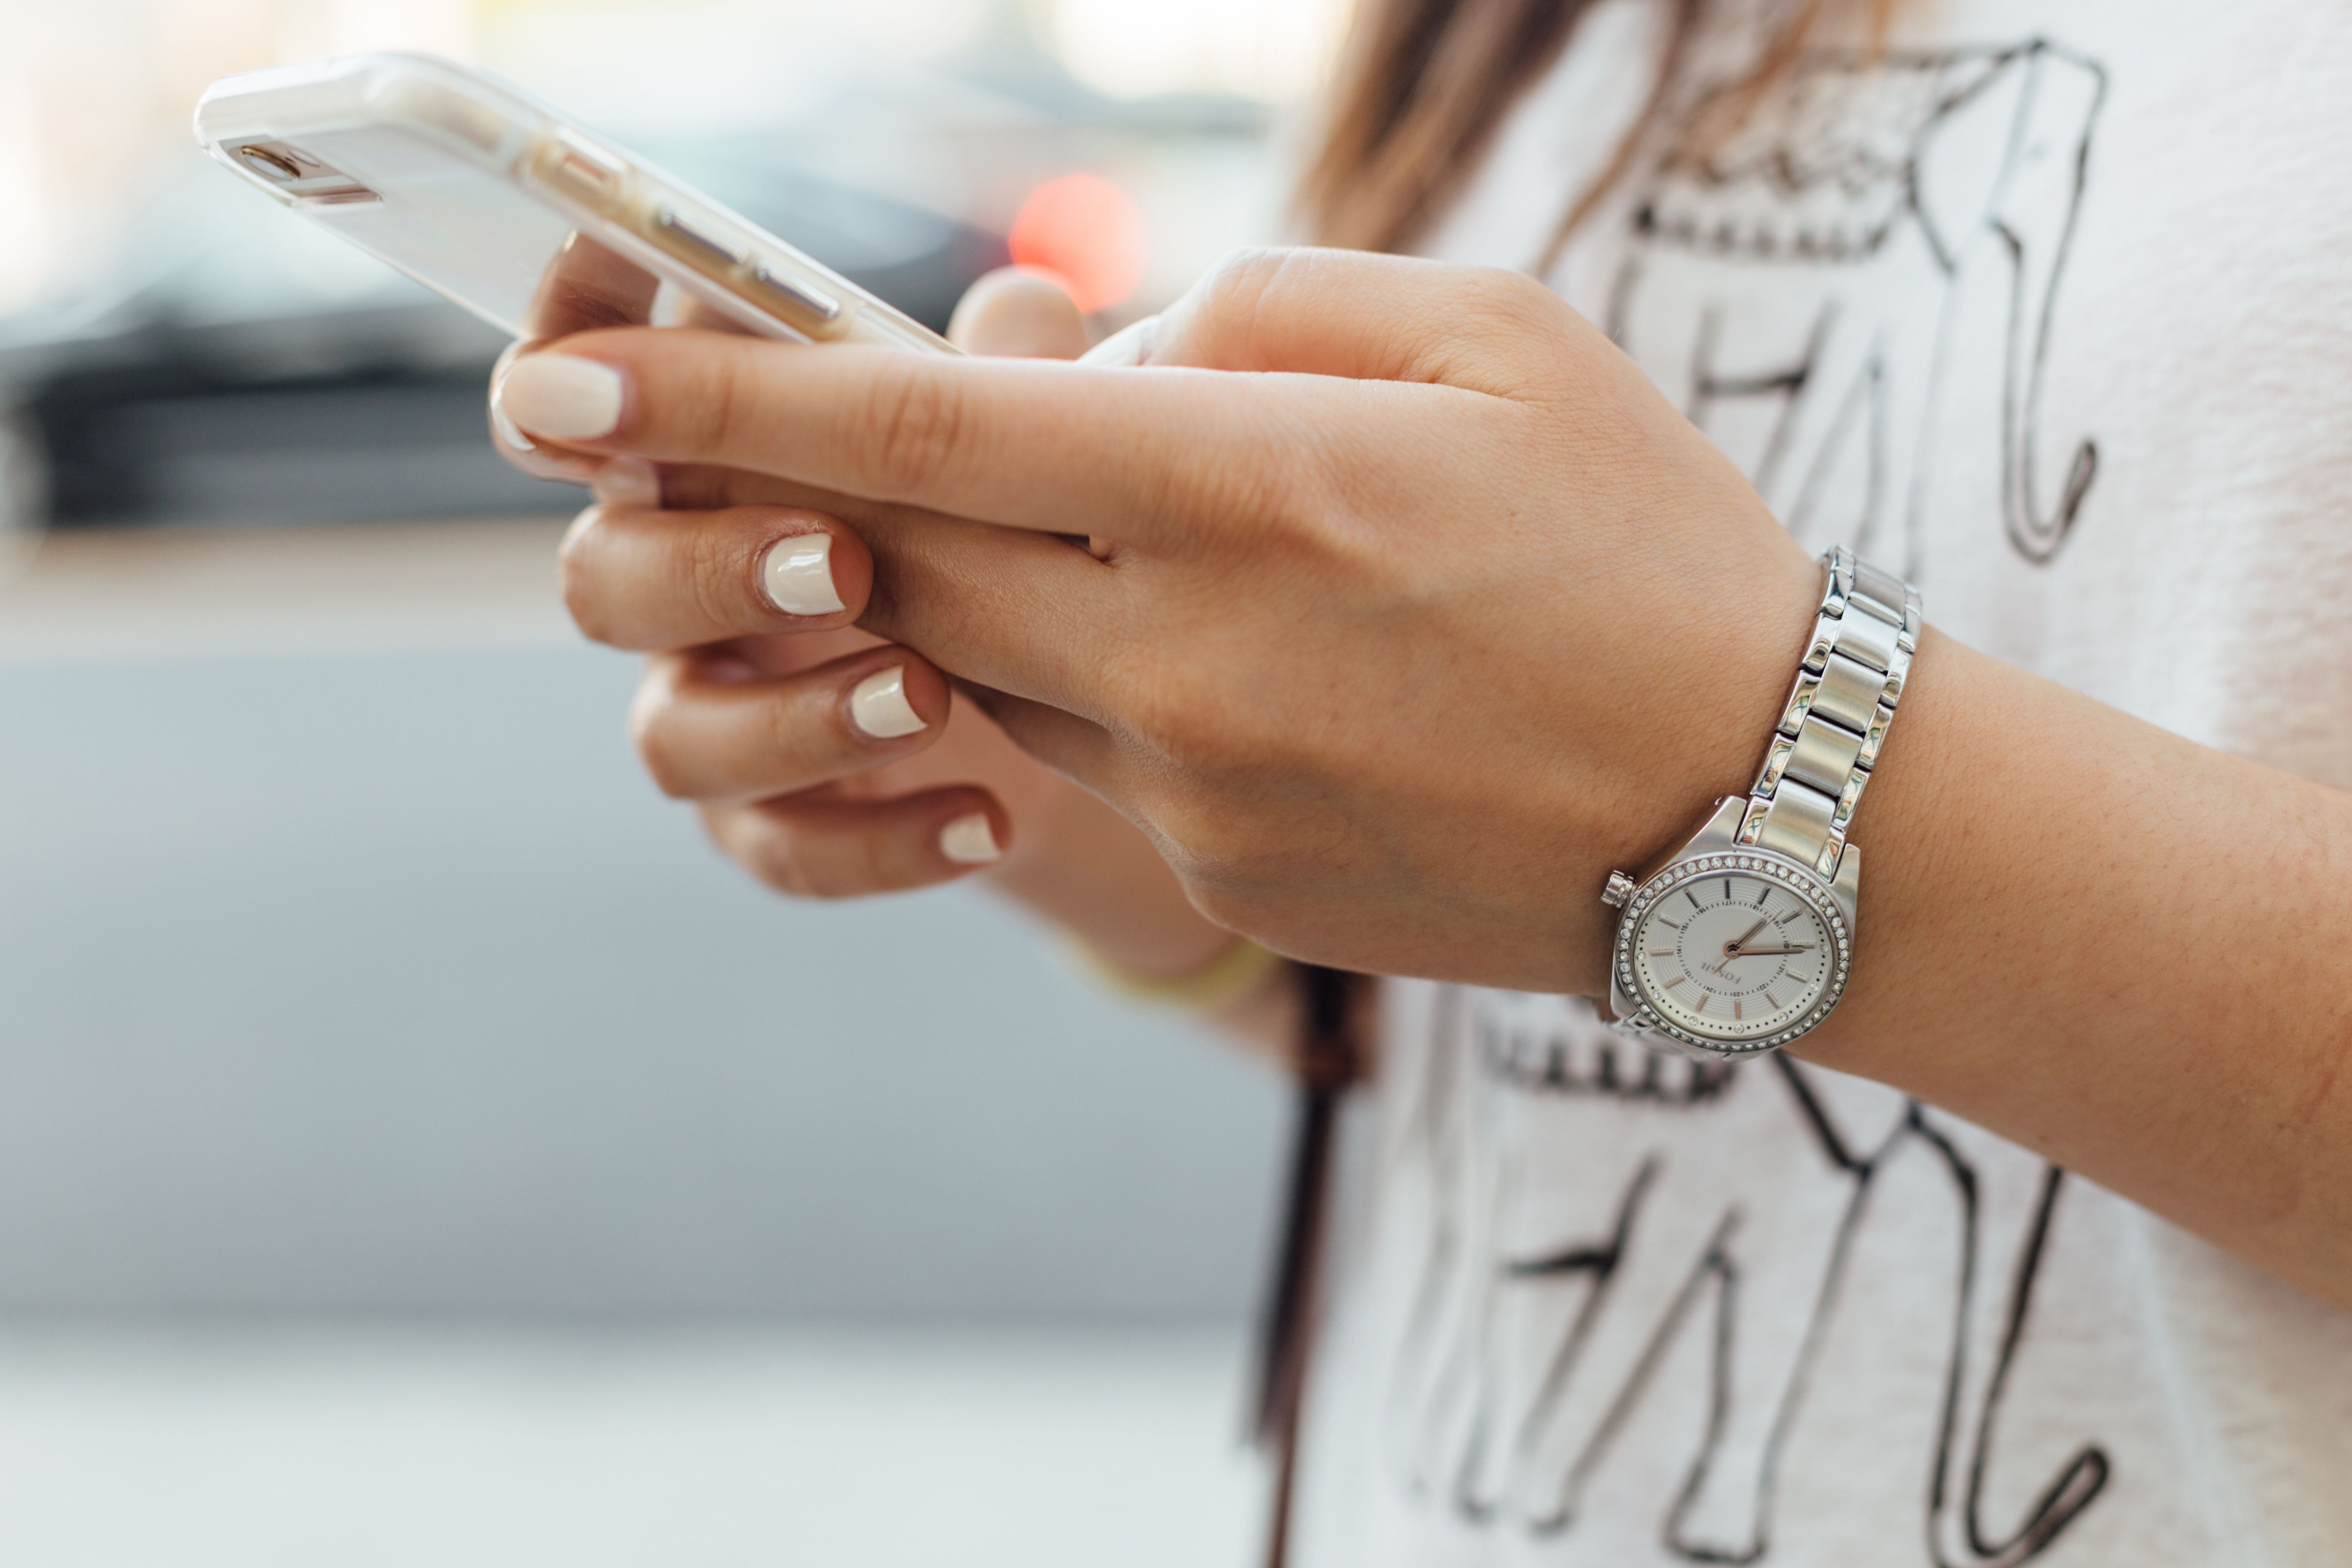 CLOSE UP OF FEMALE USING CELL PHONE